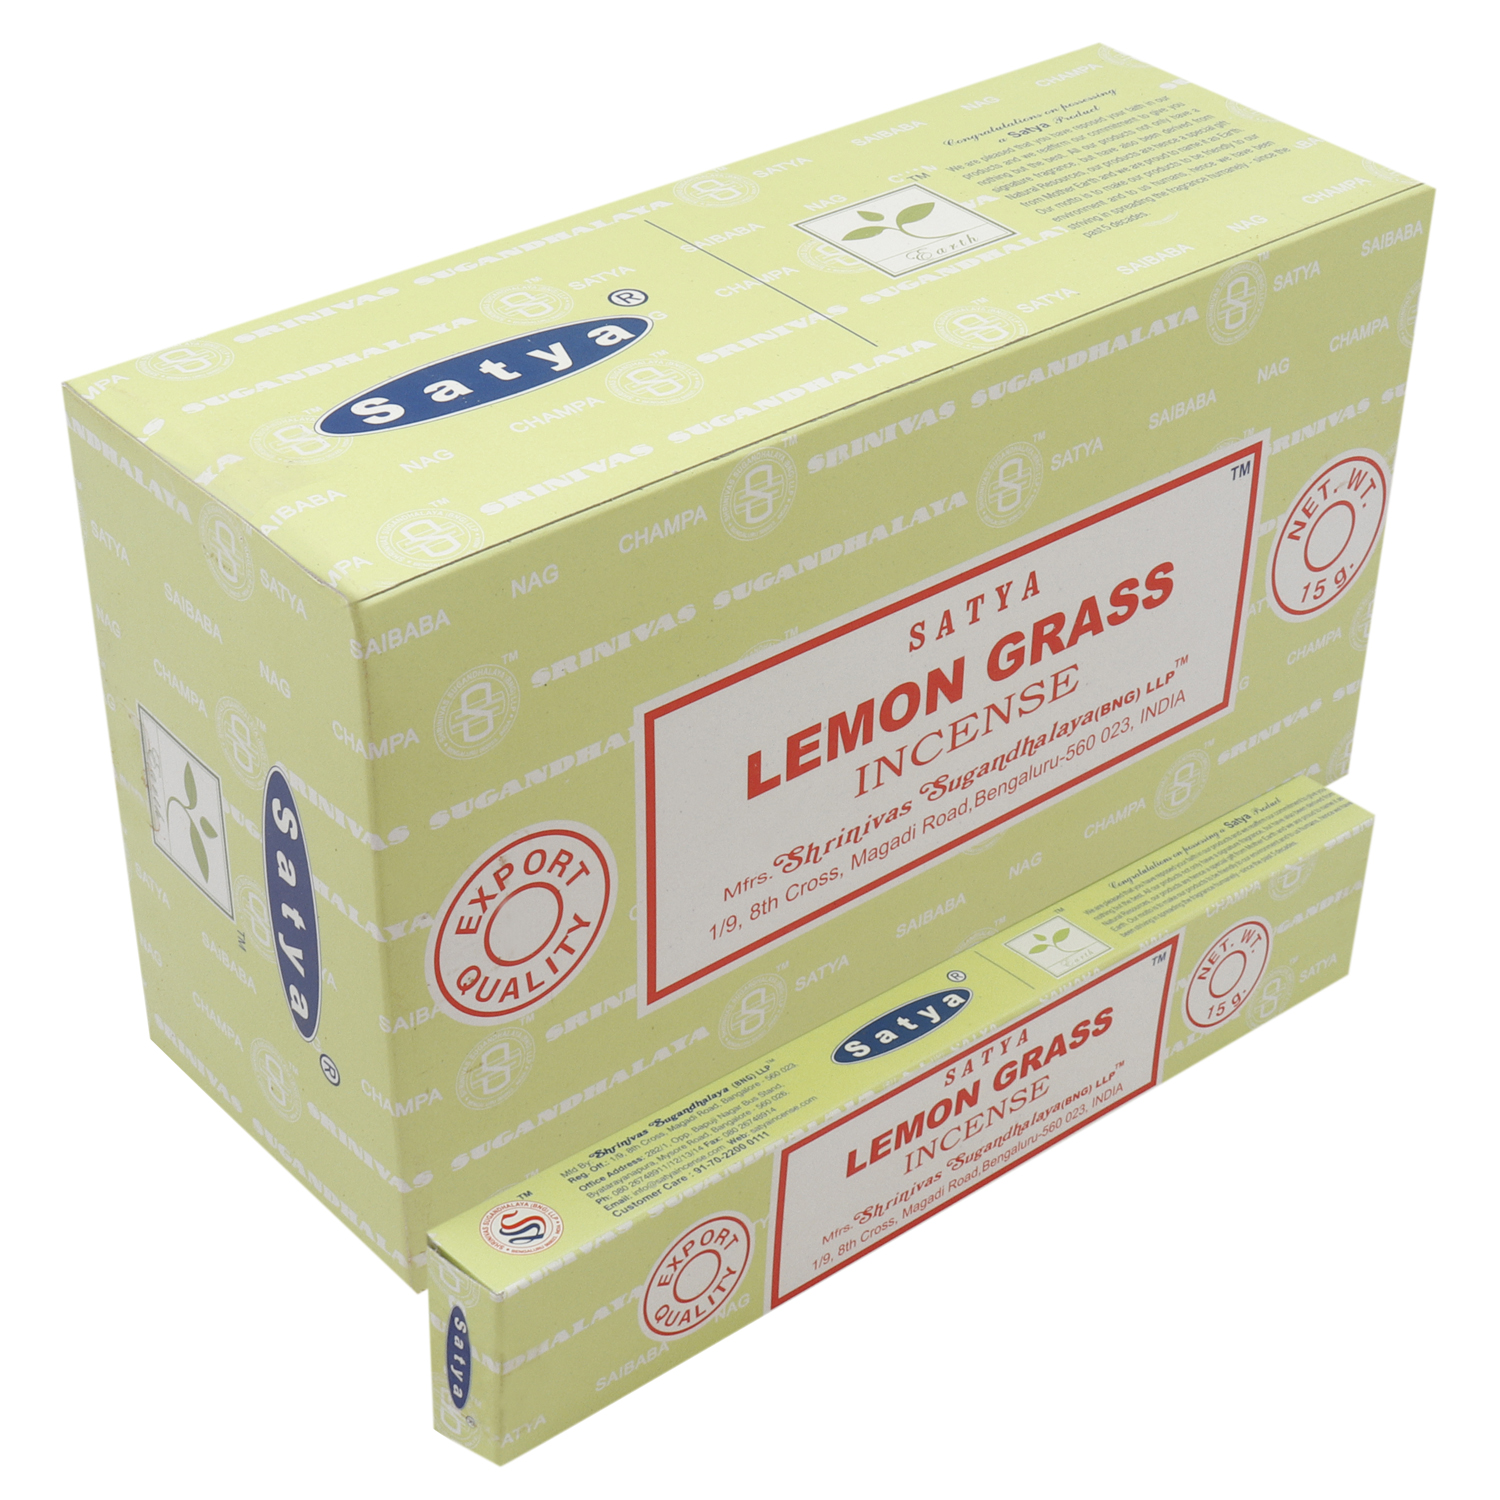 SATYA LEMONGRASS 15 GM